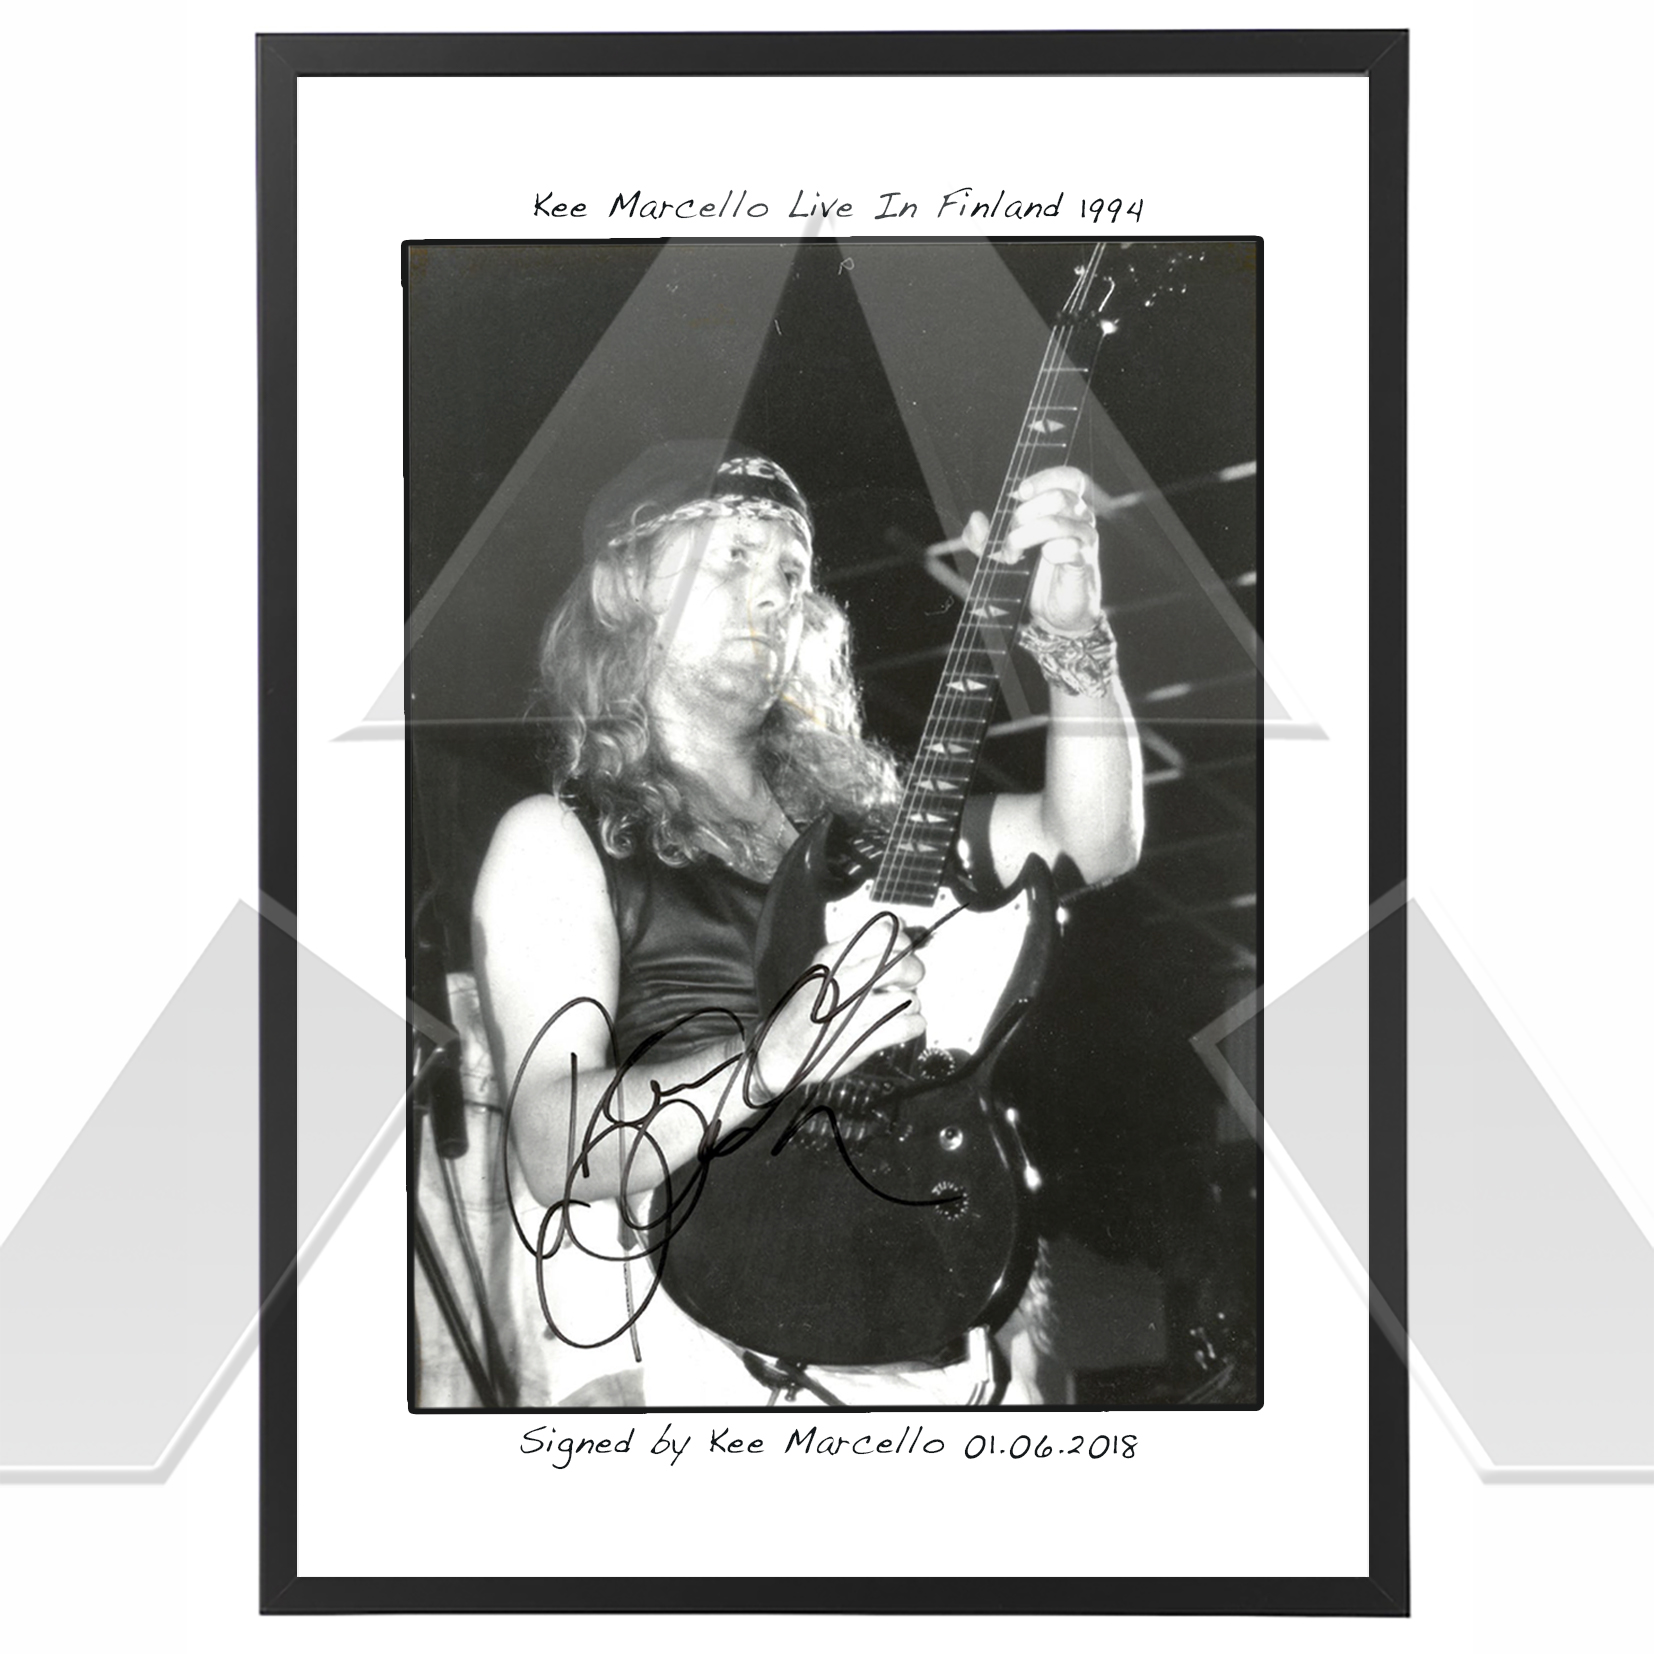 Kee Marcello ★ Red Fun Tour 1994 (photograph signed)